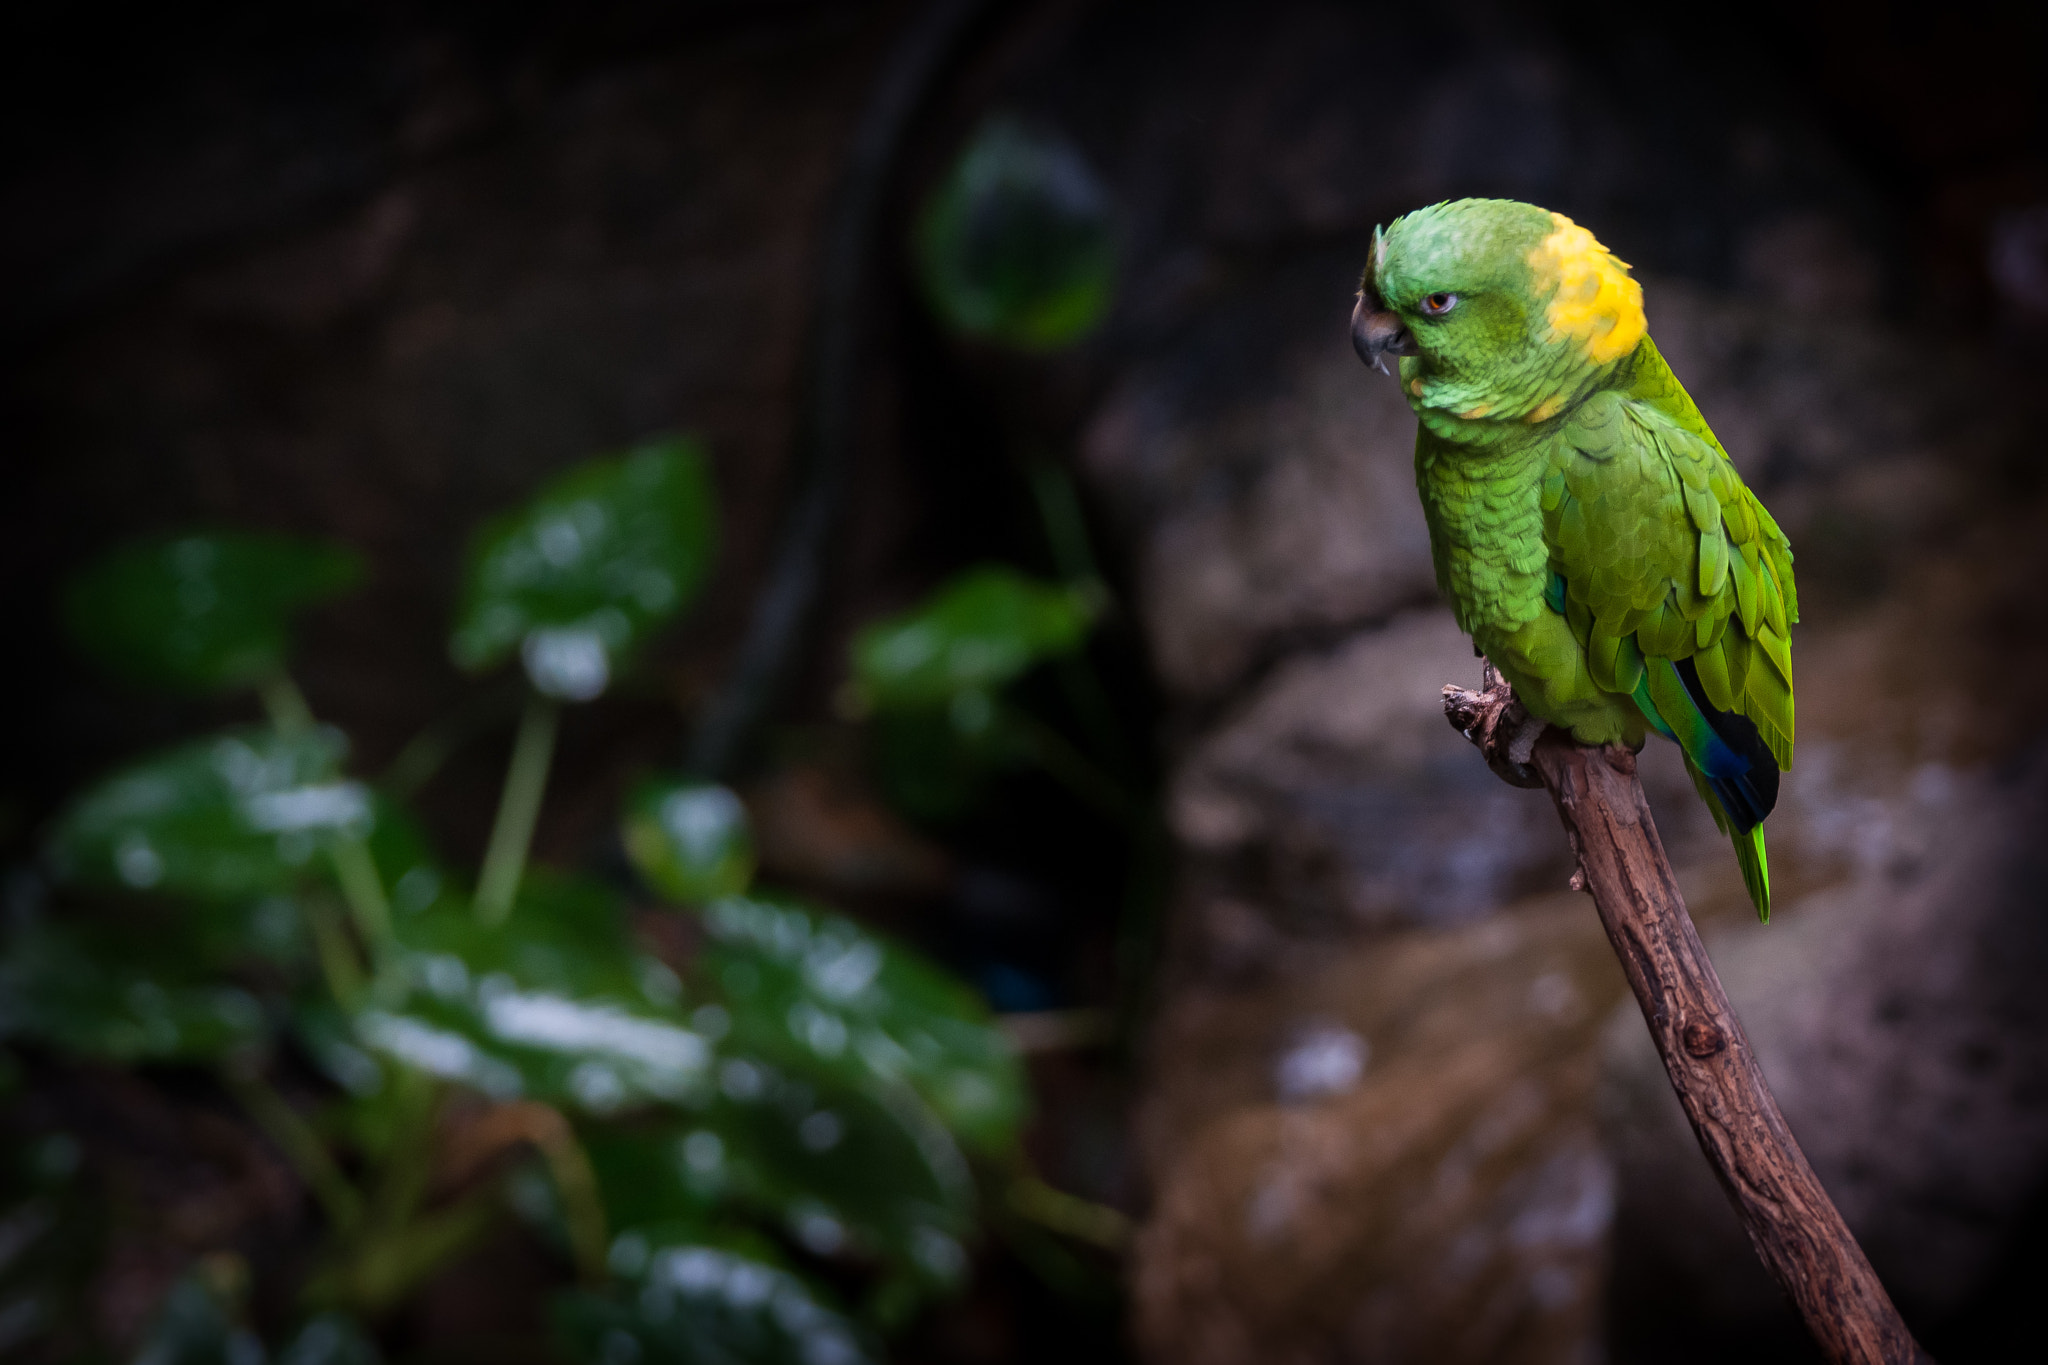 Photograph Yellow naped macaw by David Cornejo on 500px